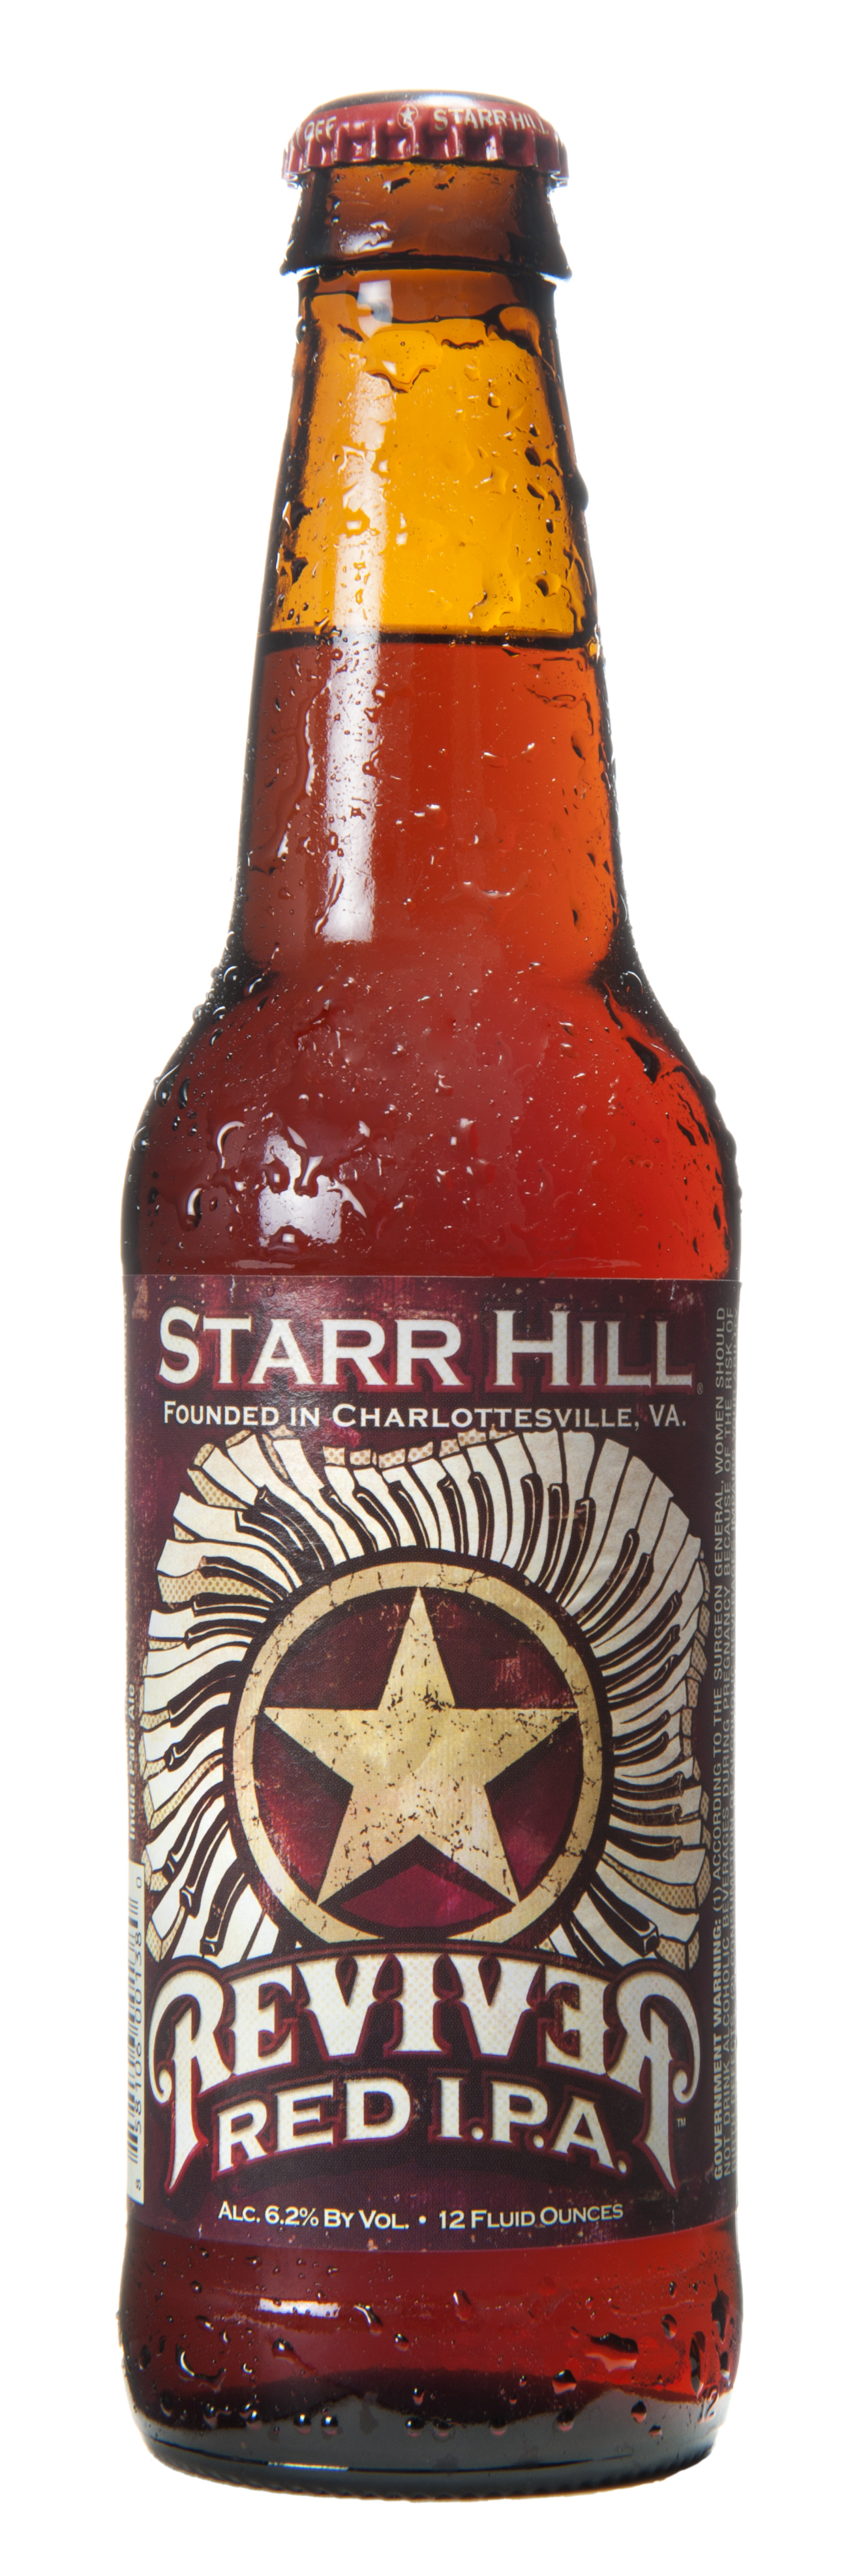 Starr Hill Reviver Red IPA